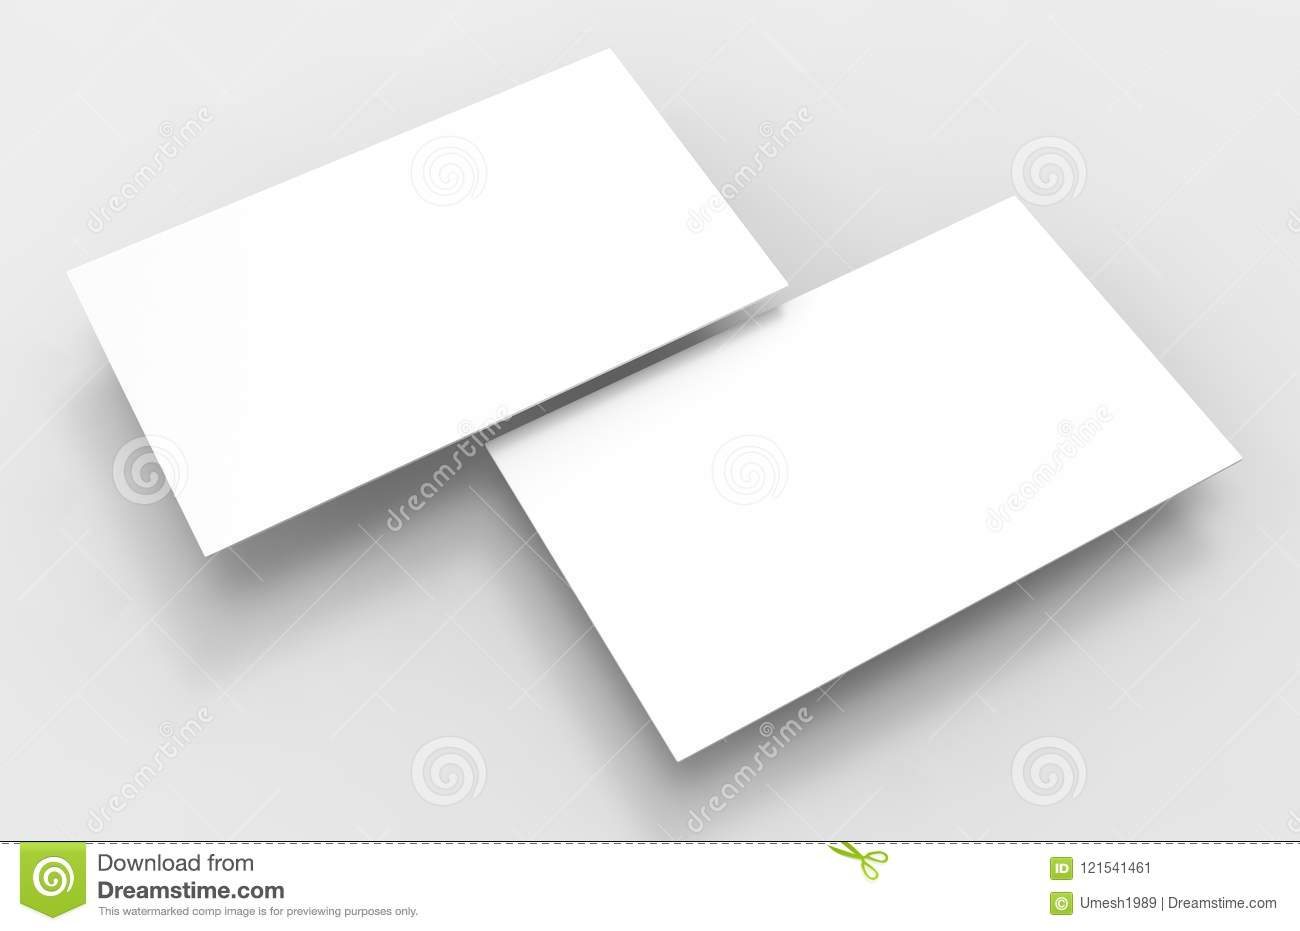 Blank white 3d visiting card template 3d render illustration for blank white 3d visiting card template 3d render illustration for mock up and design presentation cheaphphosting